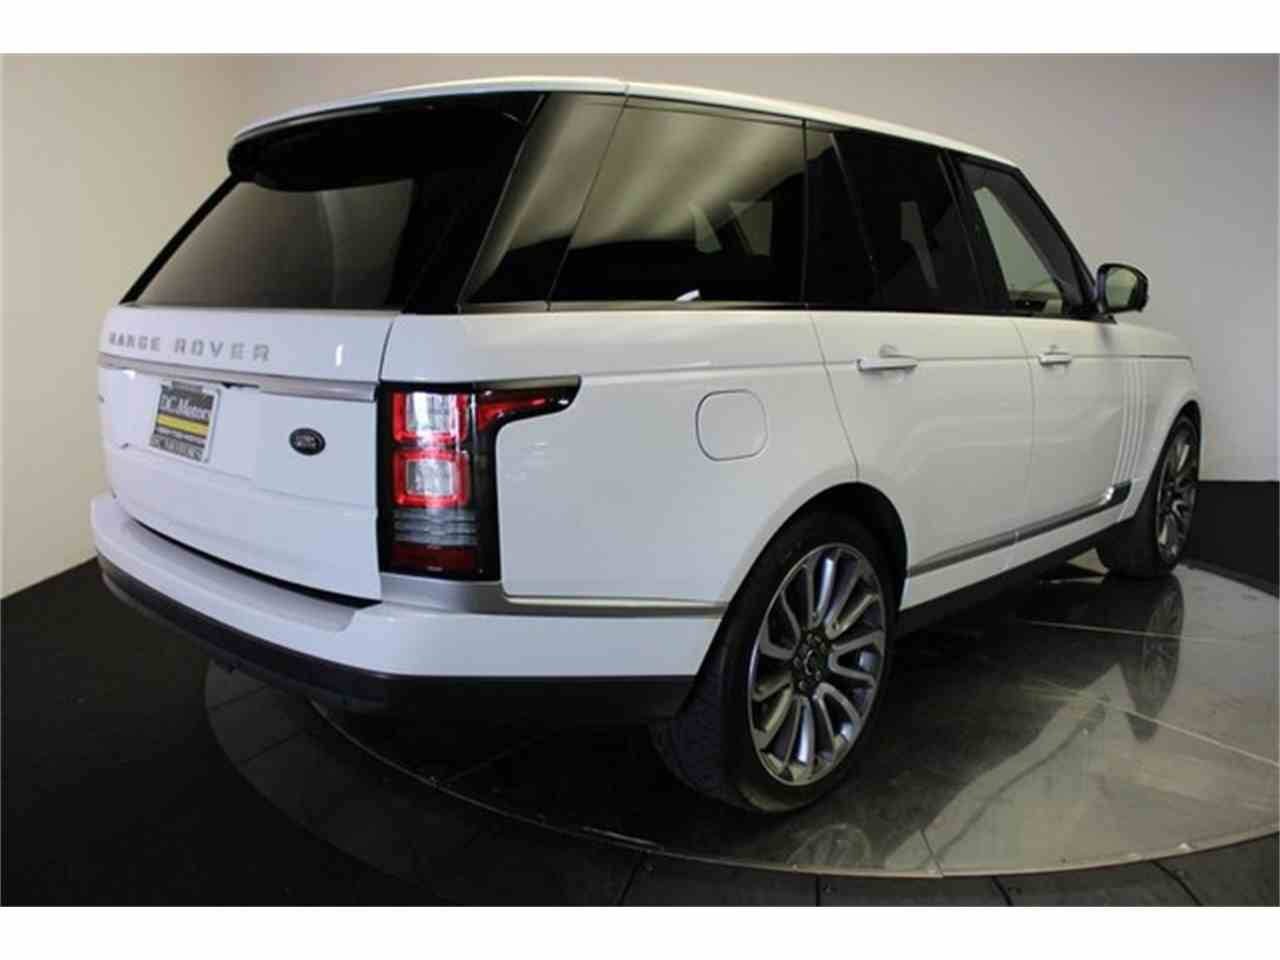 Large Picture of 2013 Land Rover Range Rover located in Anaheim California - $73,888.00 Offered by DC Motors - KHXU